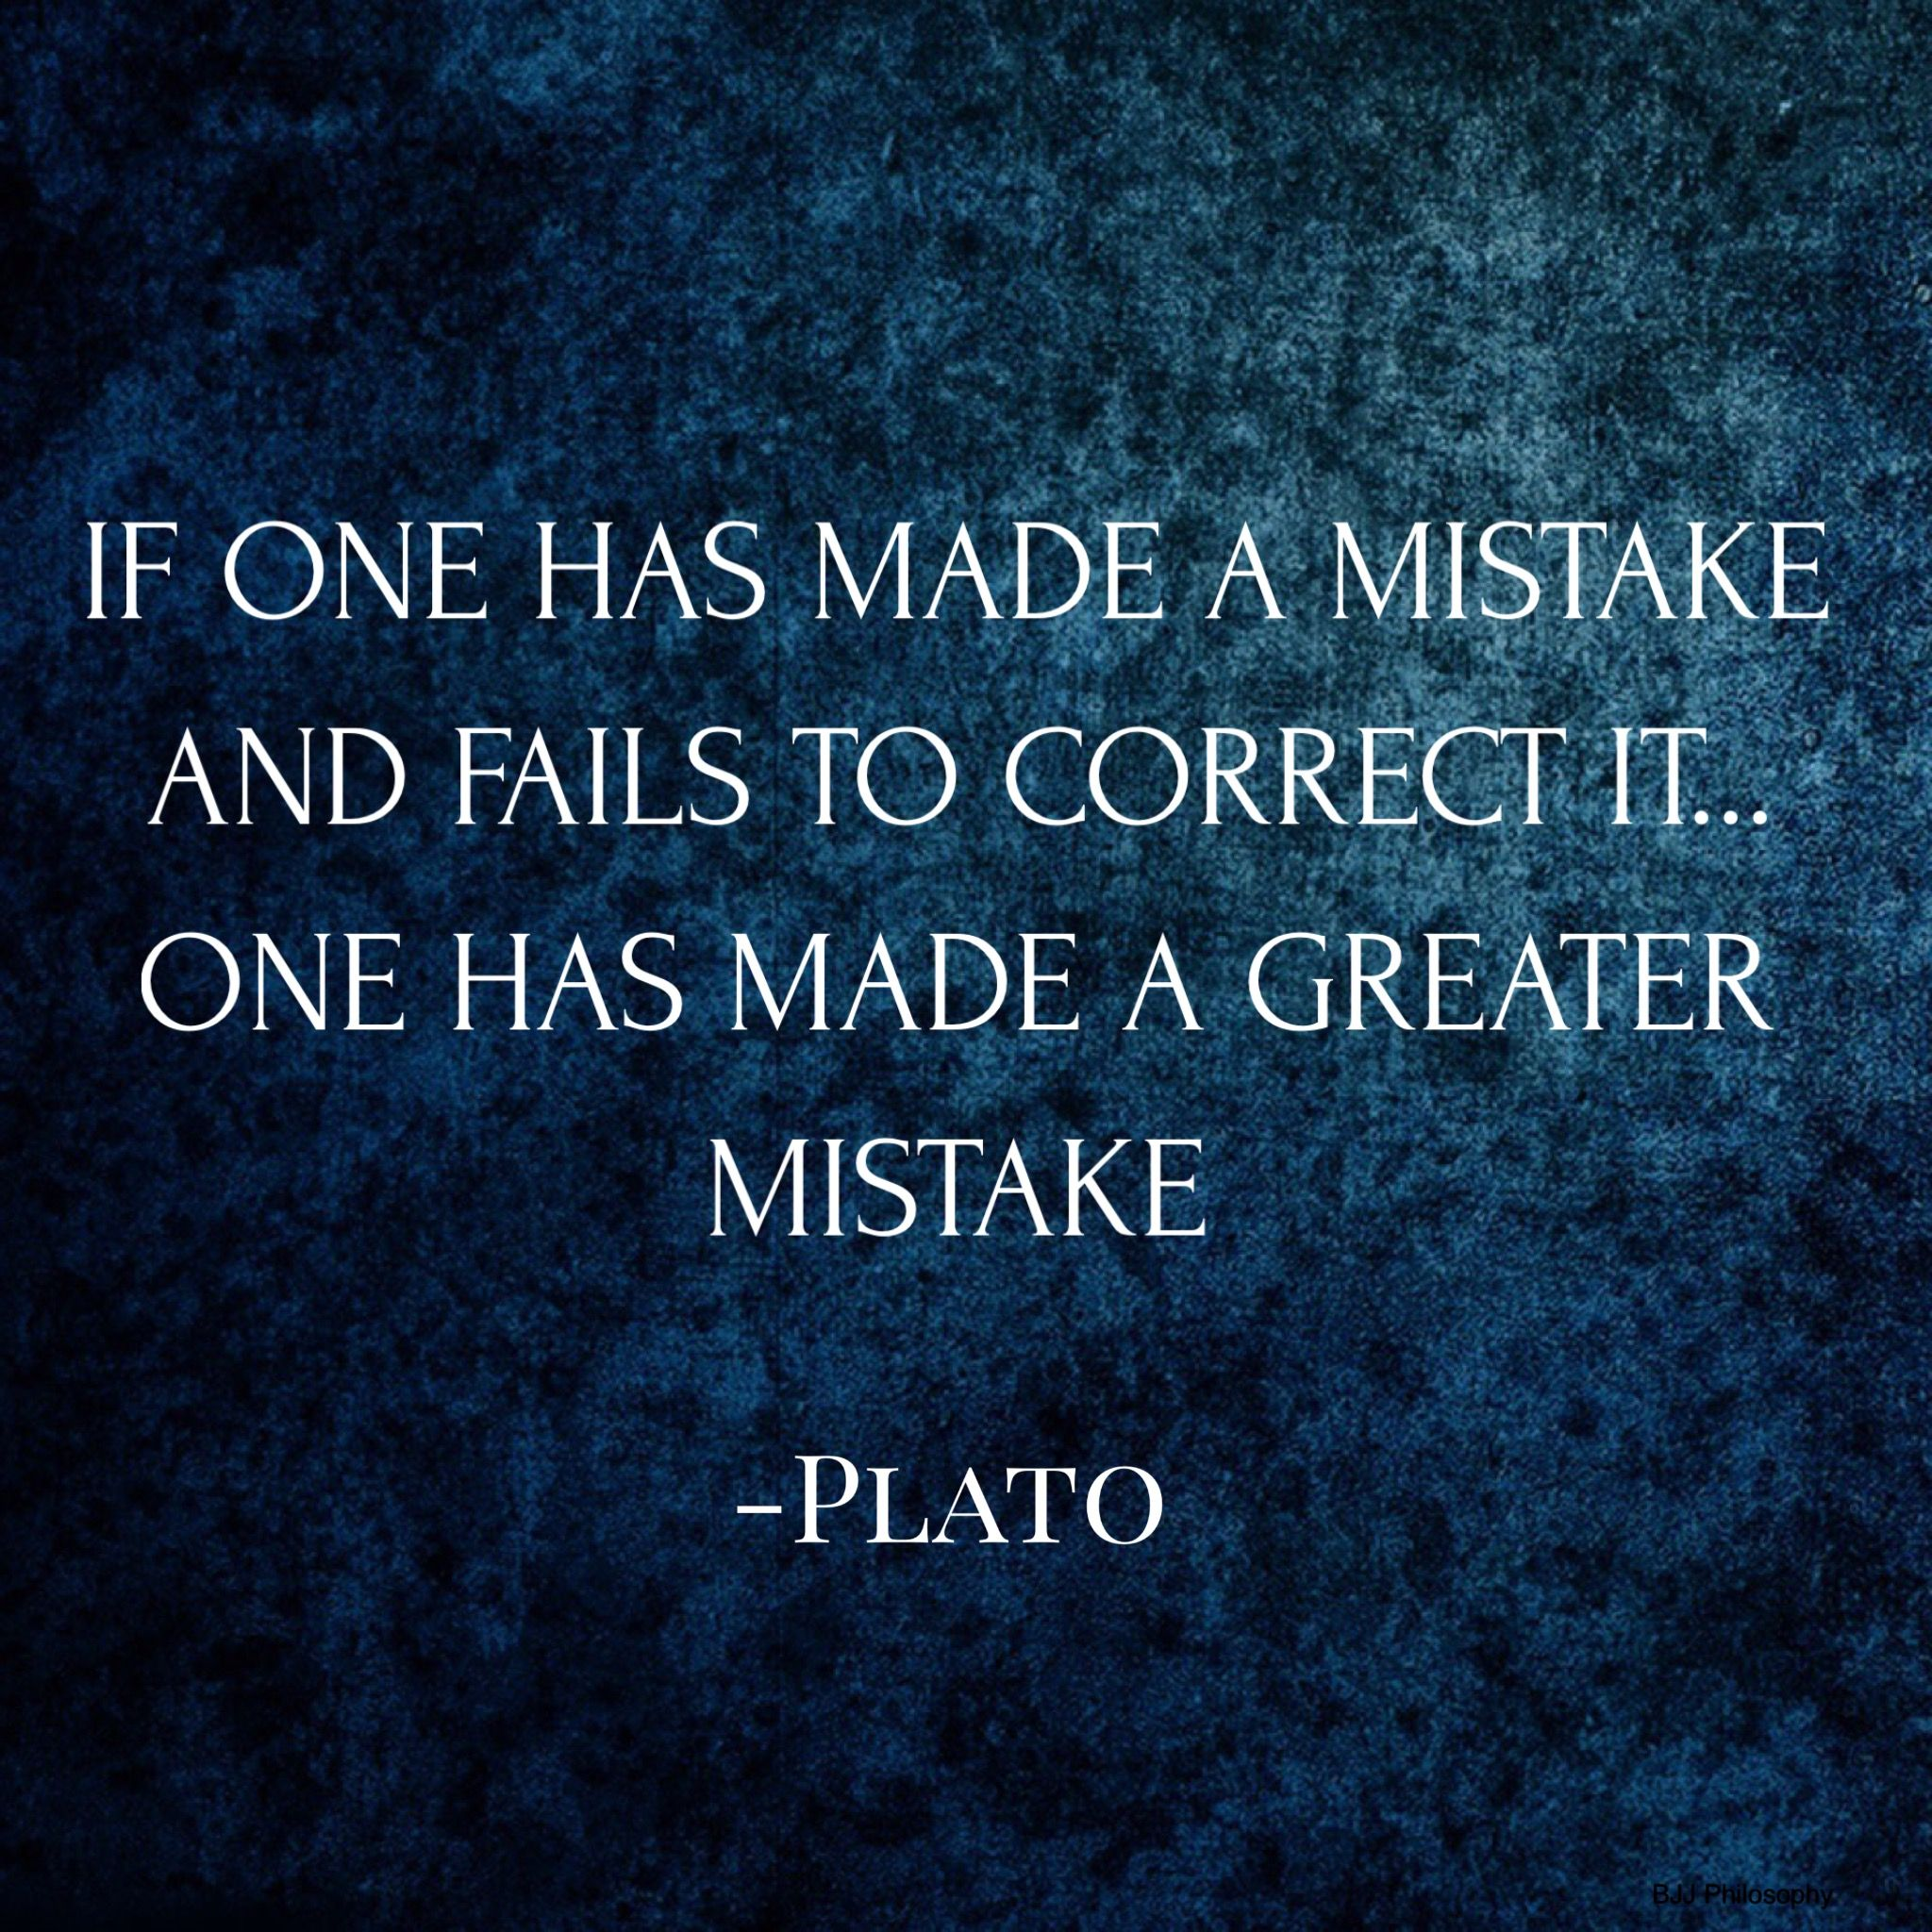 Philosophers Quotes On Life Plato Quotes  Penn Foster Student Community  Philosophers And